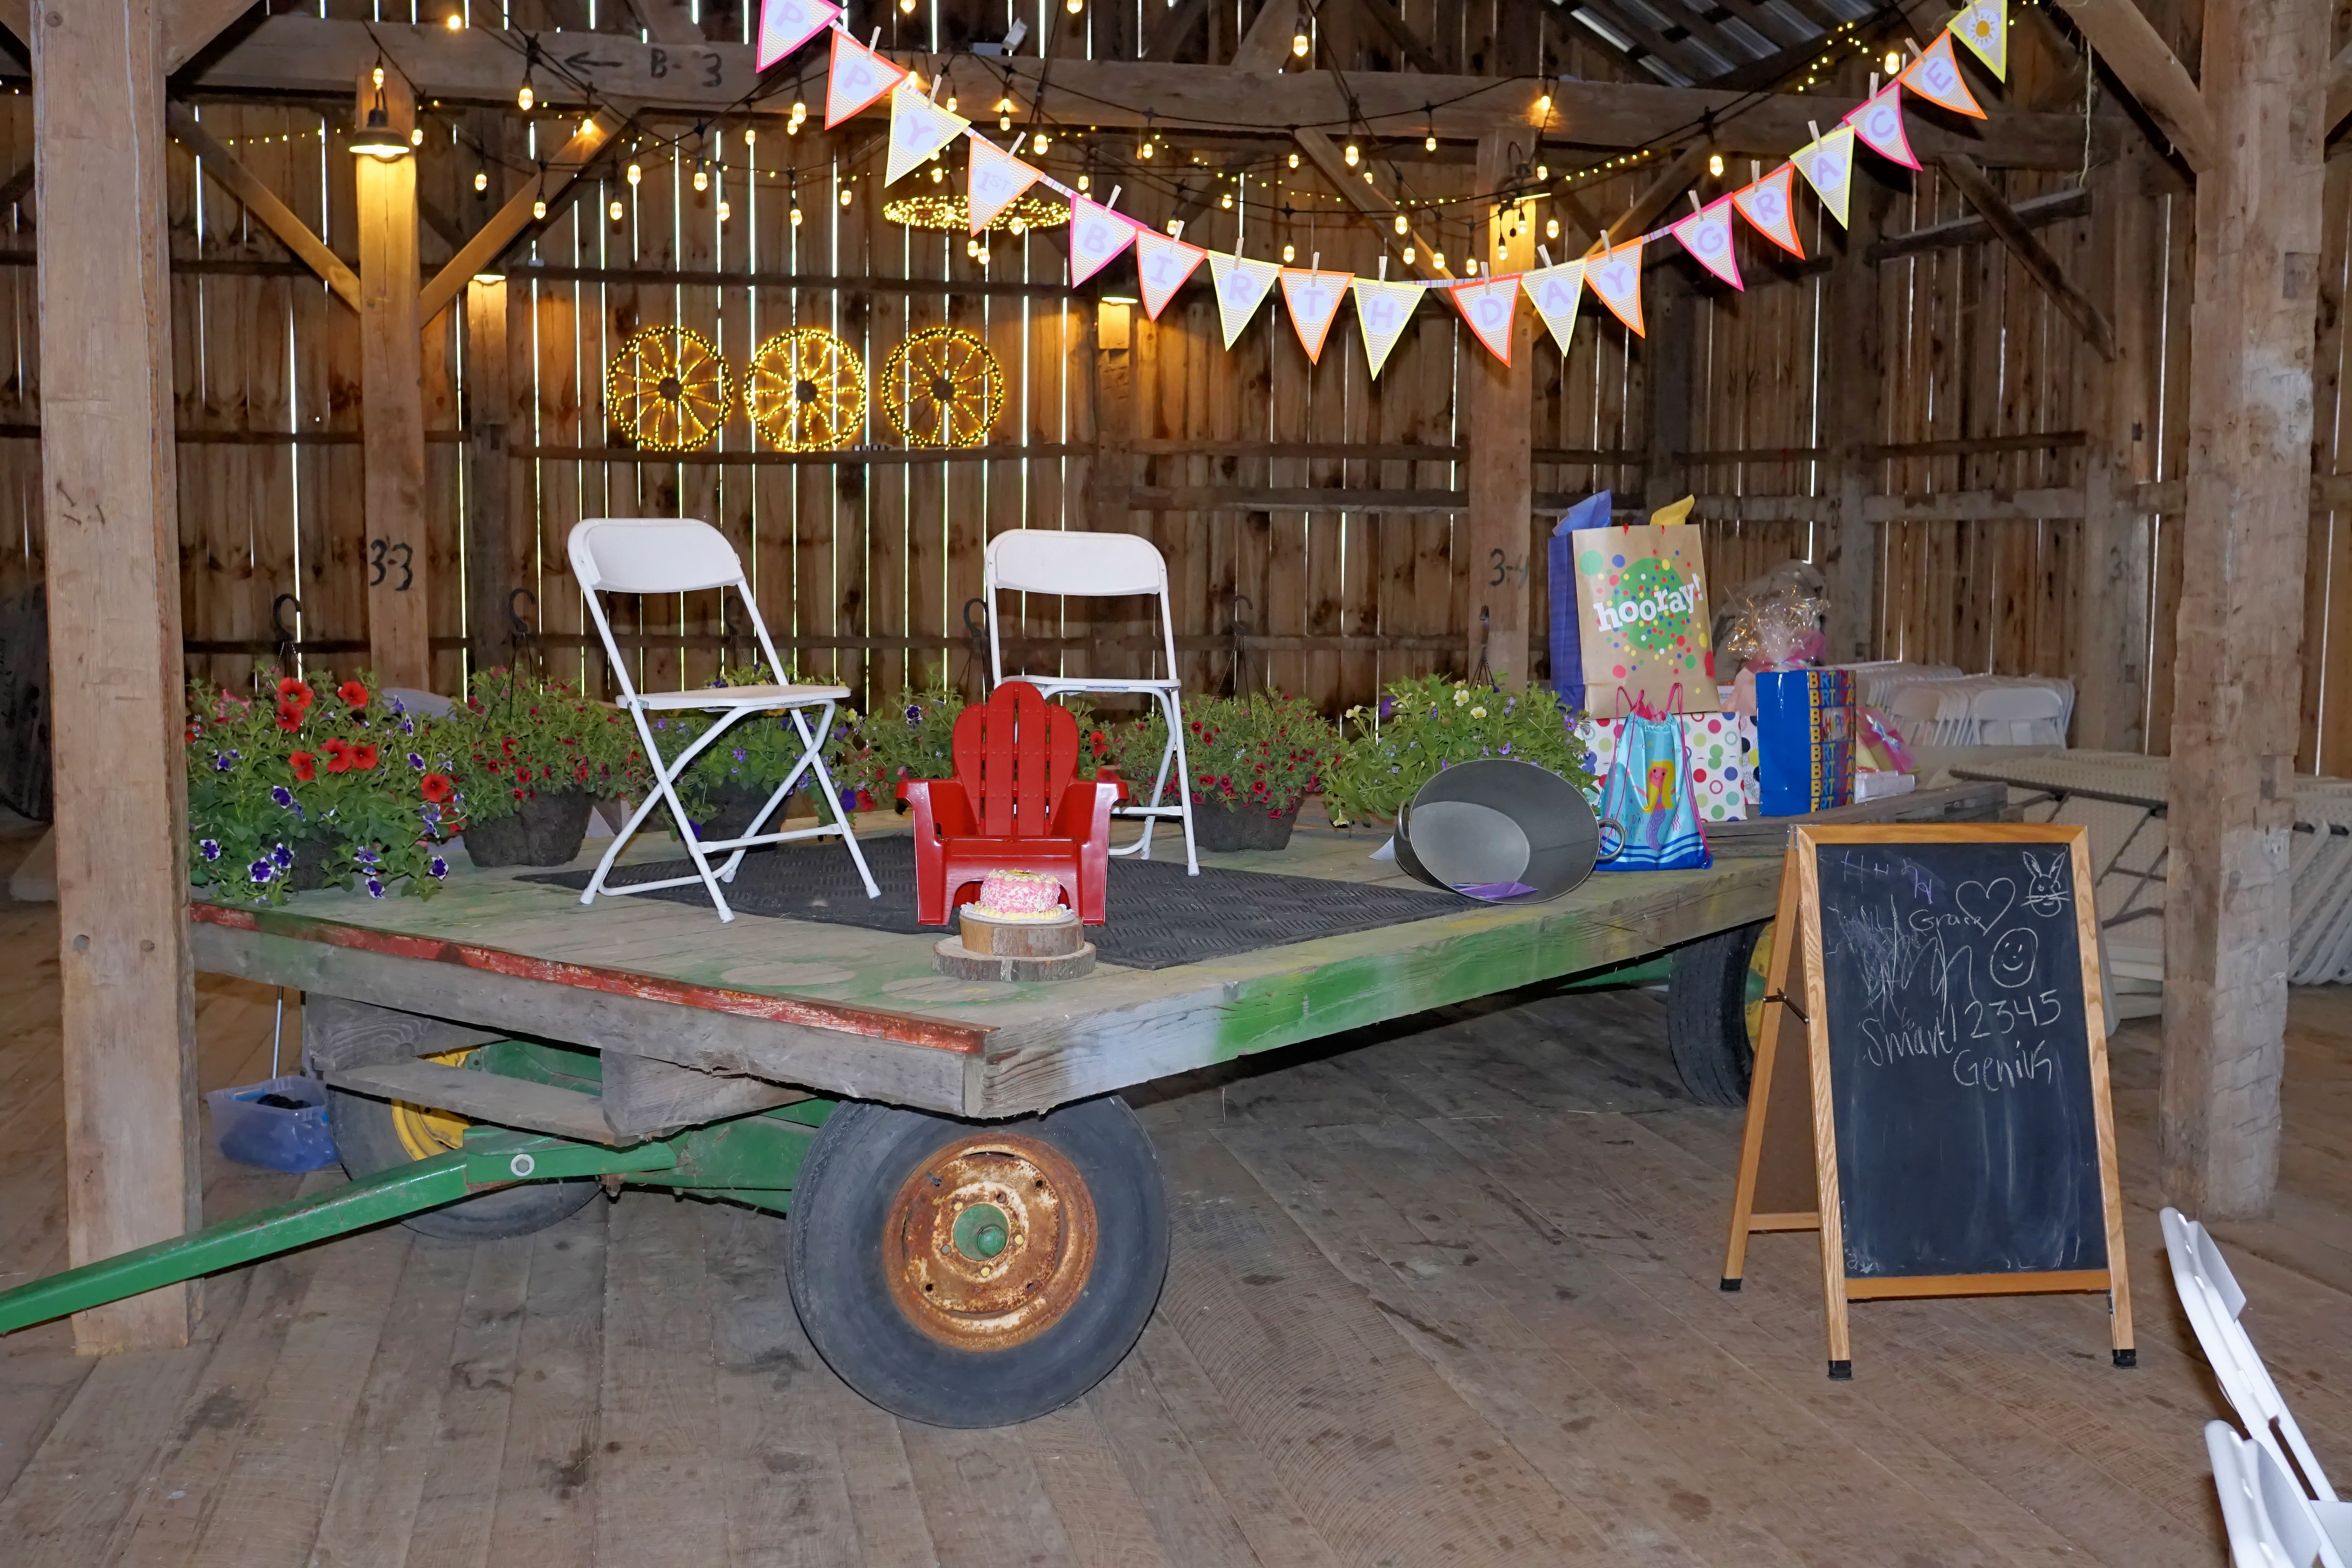 Opening gifts on a hay wagon